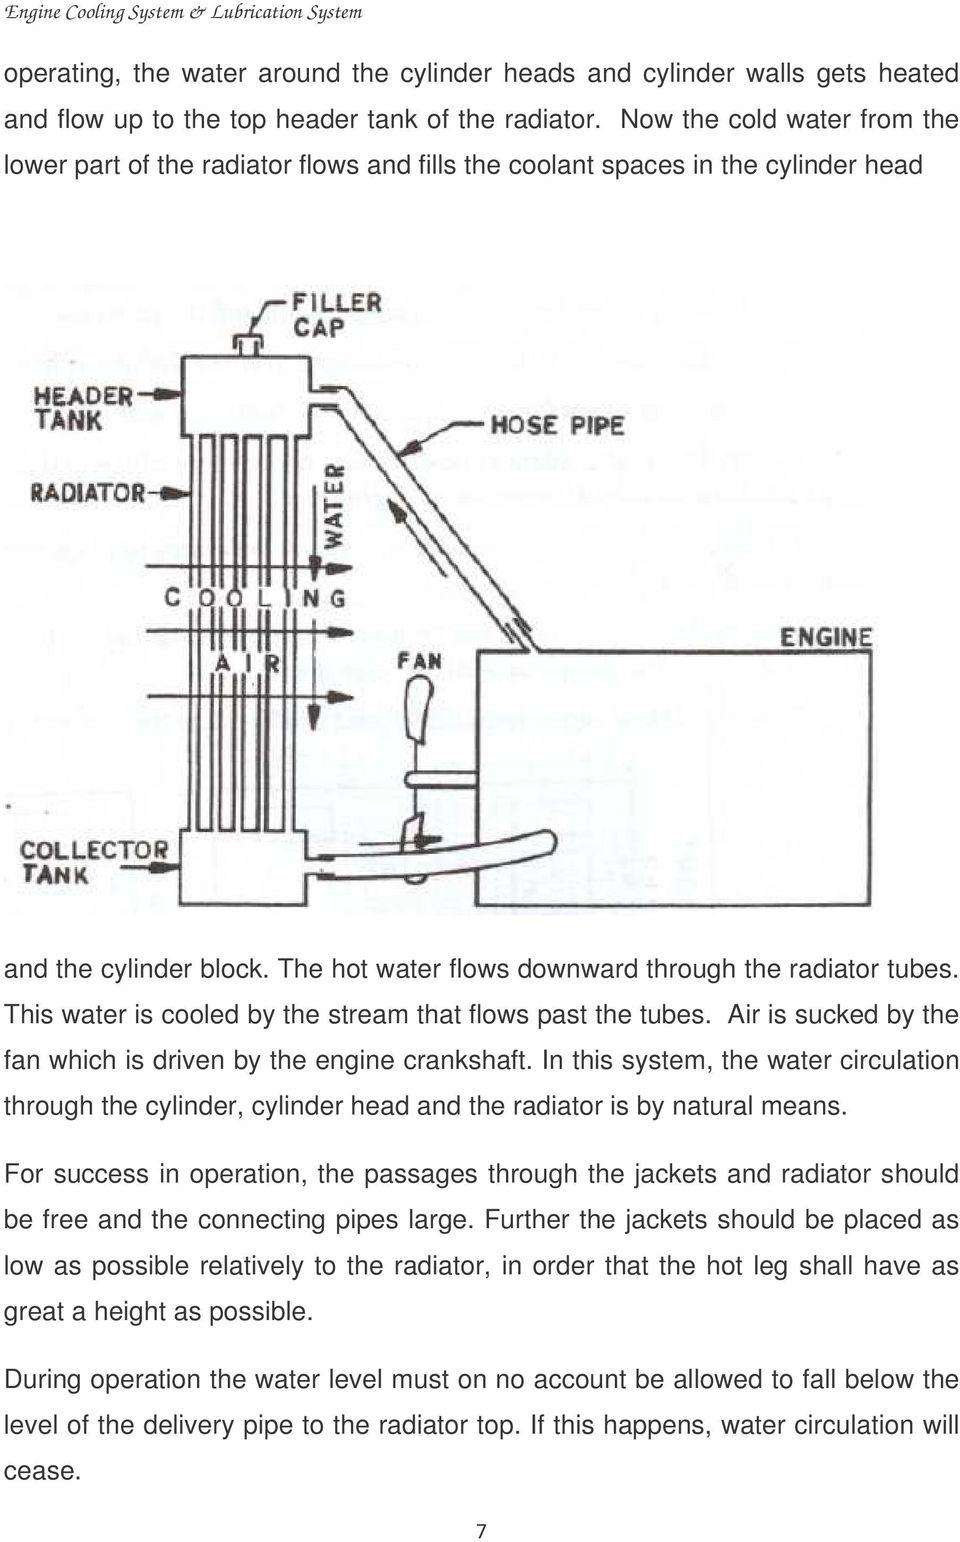 Engine Cooling System Pdf Crankshaft Diagram This Water Is Cooled By The Stream That Flows Past Tubes Air Sucked